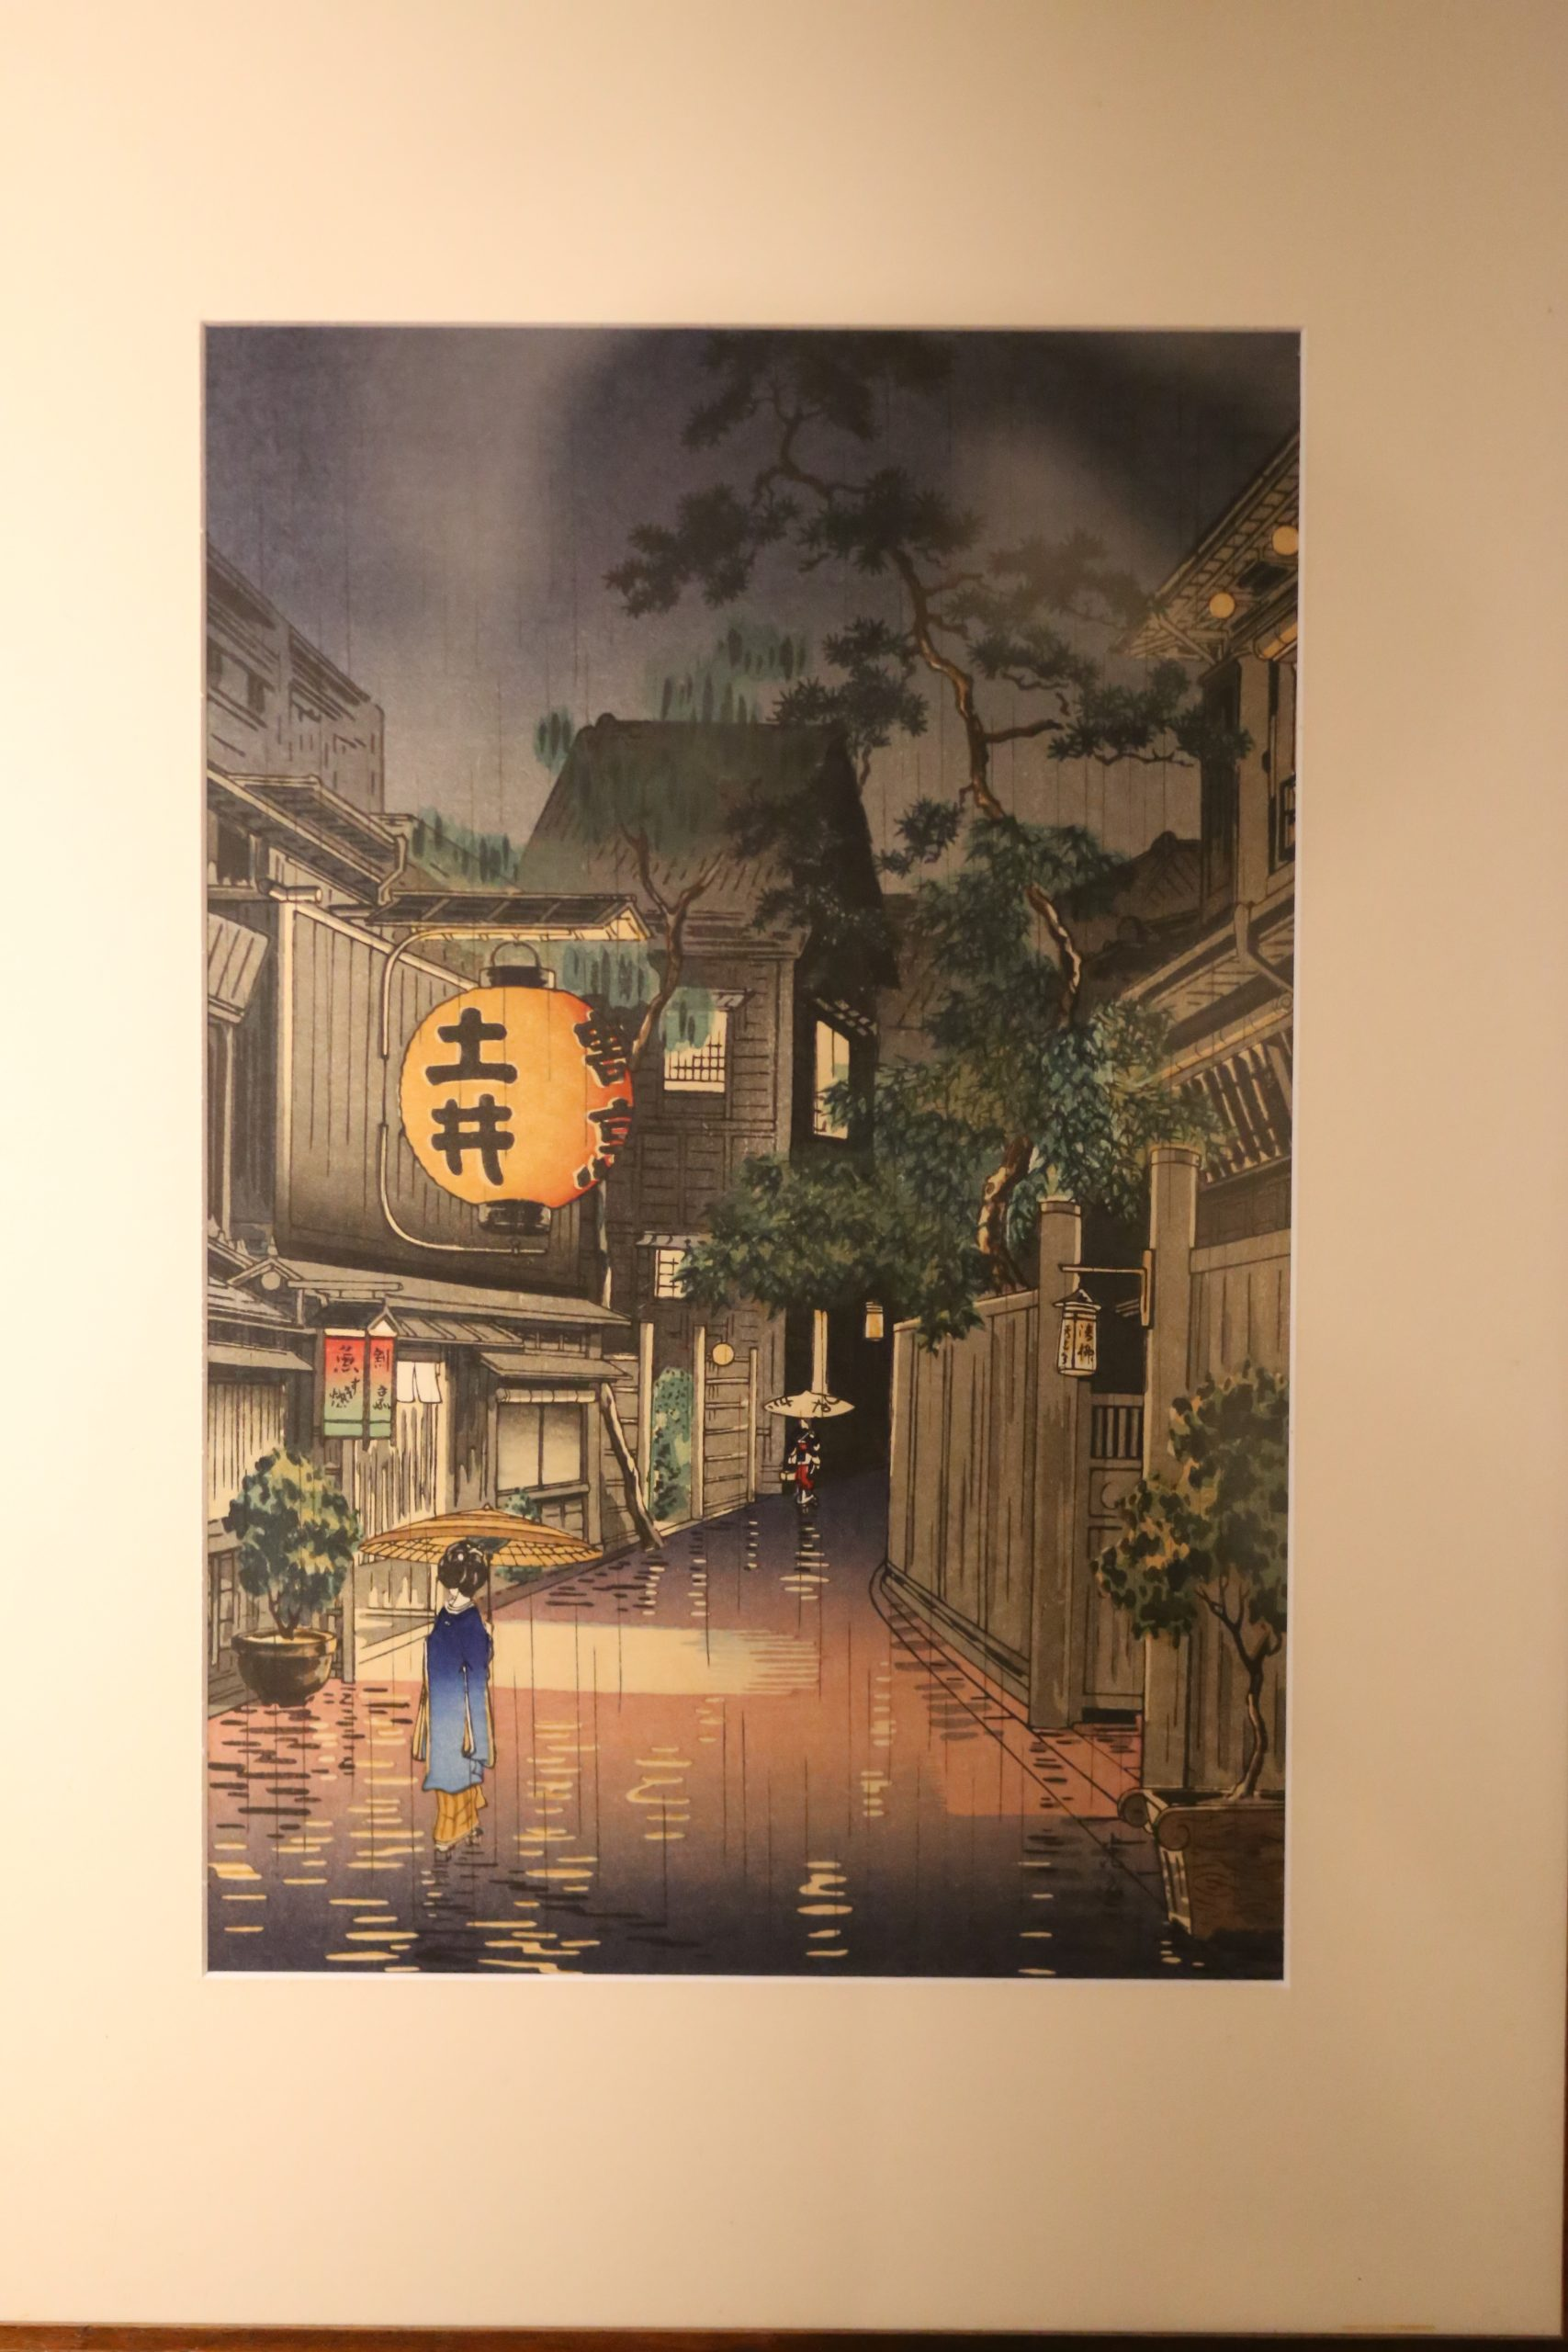 japanese.prints.org: Japanese Prints (Ukiyo-e)